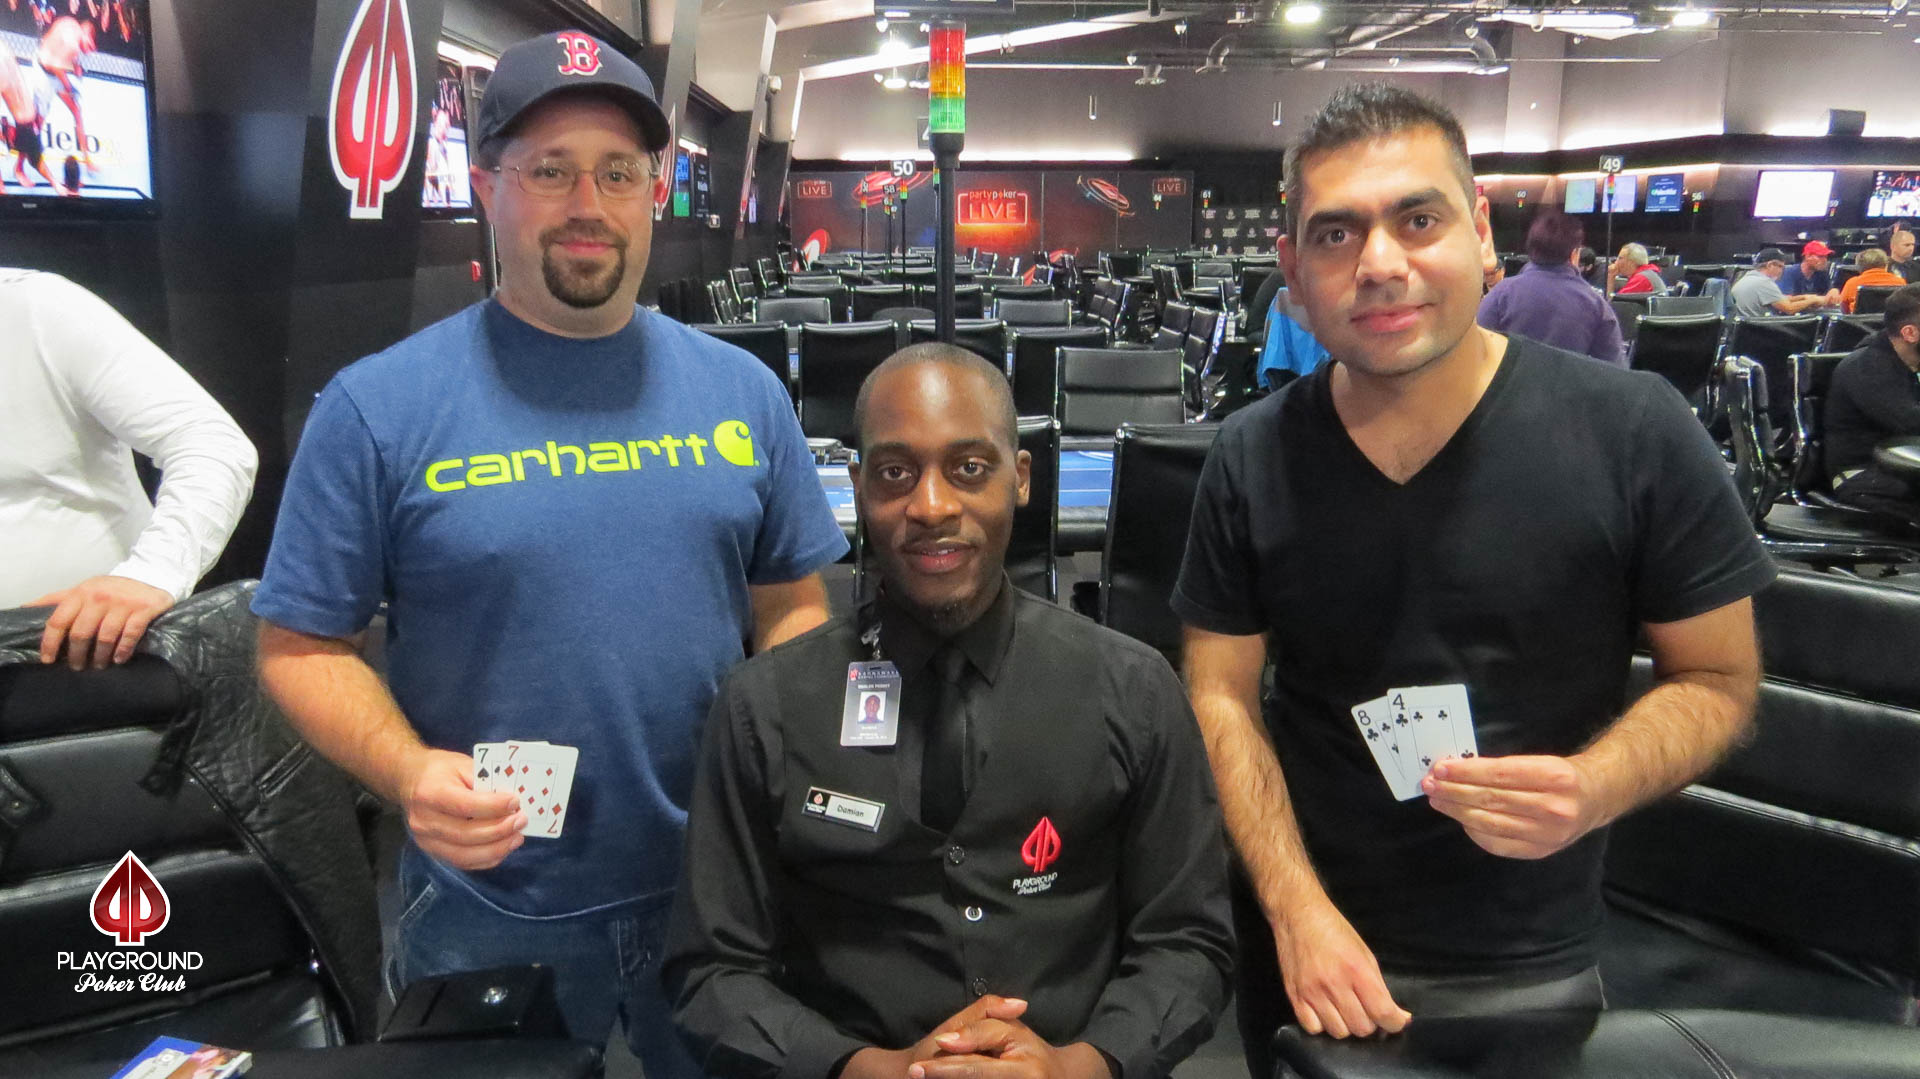 Straight flush over Quads – another BBJ hits!